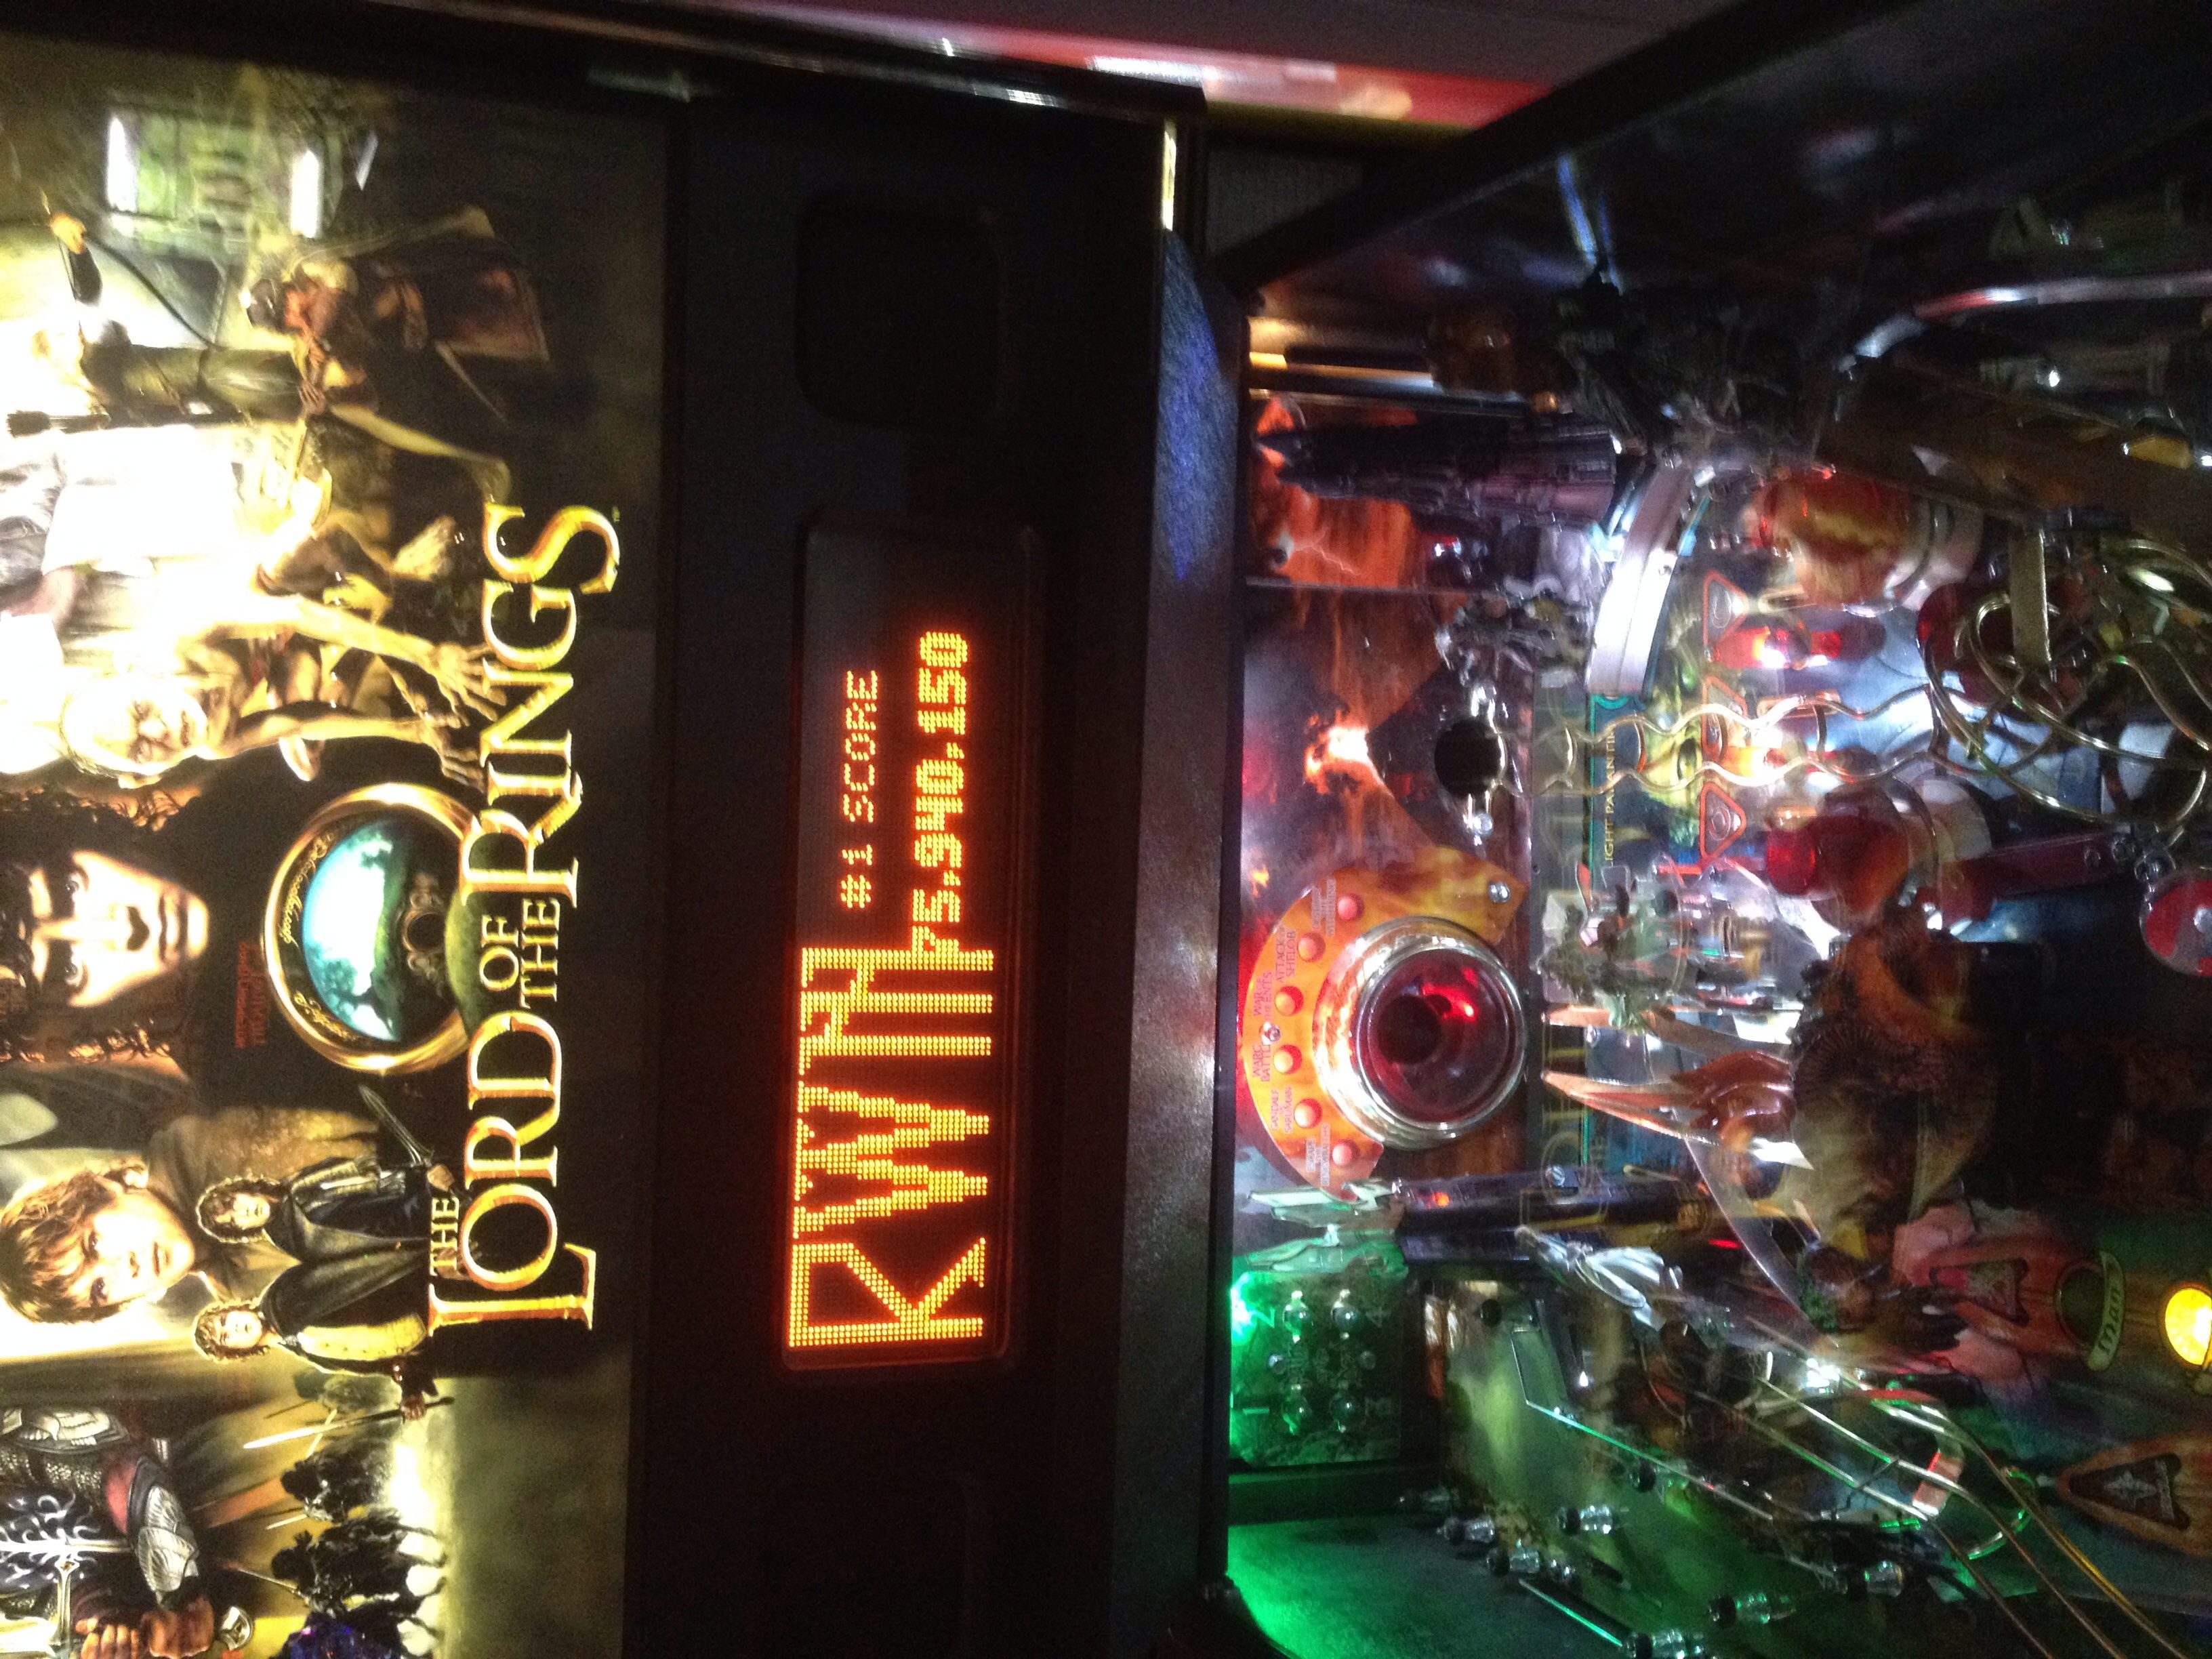 Rachelwmo: The Lord of the Rings (Pinball: 3 Balls) 75,940,150 points on 2014-09-09 22:36:30